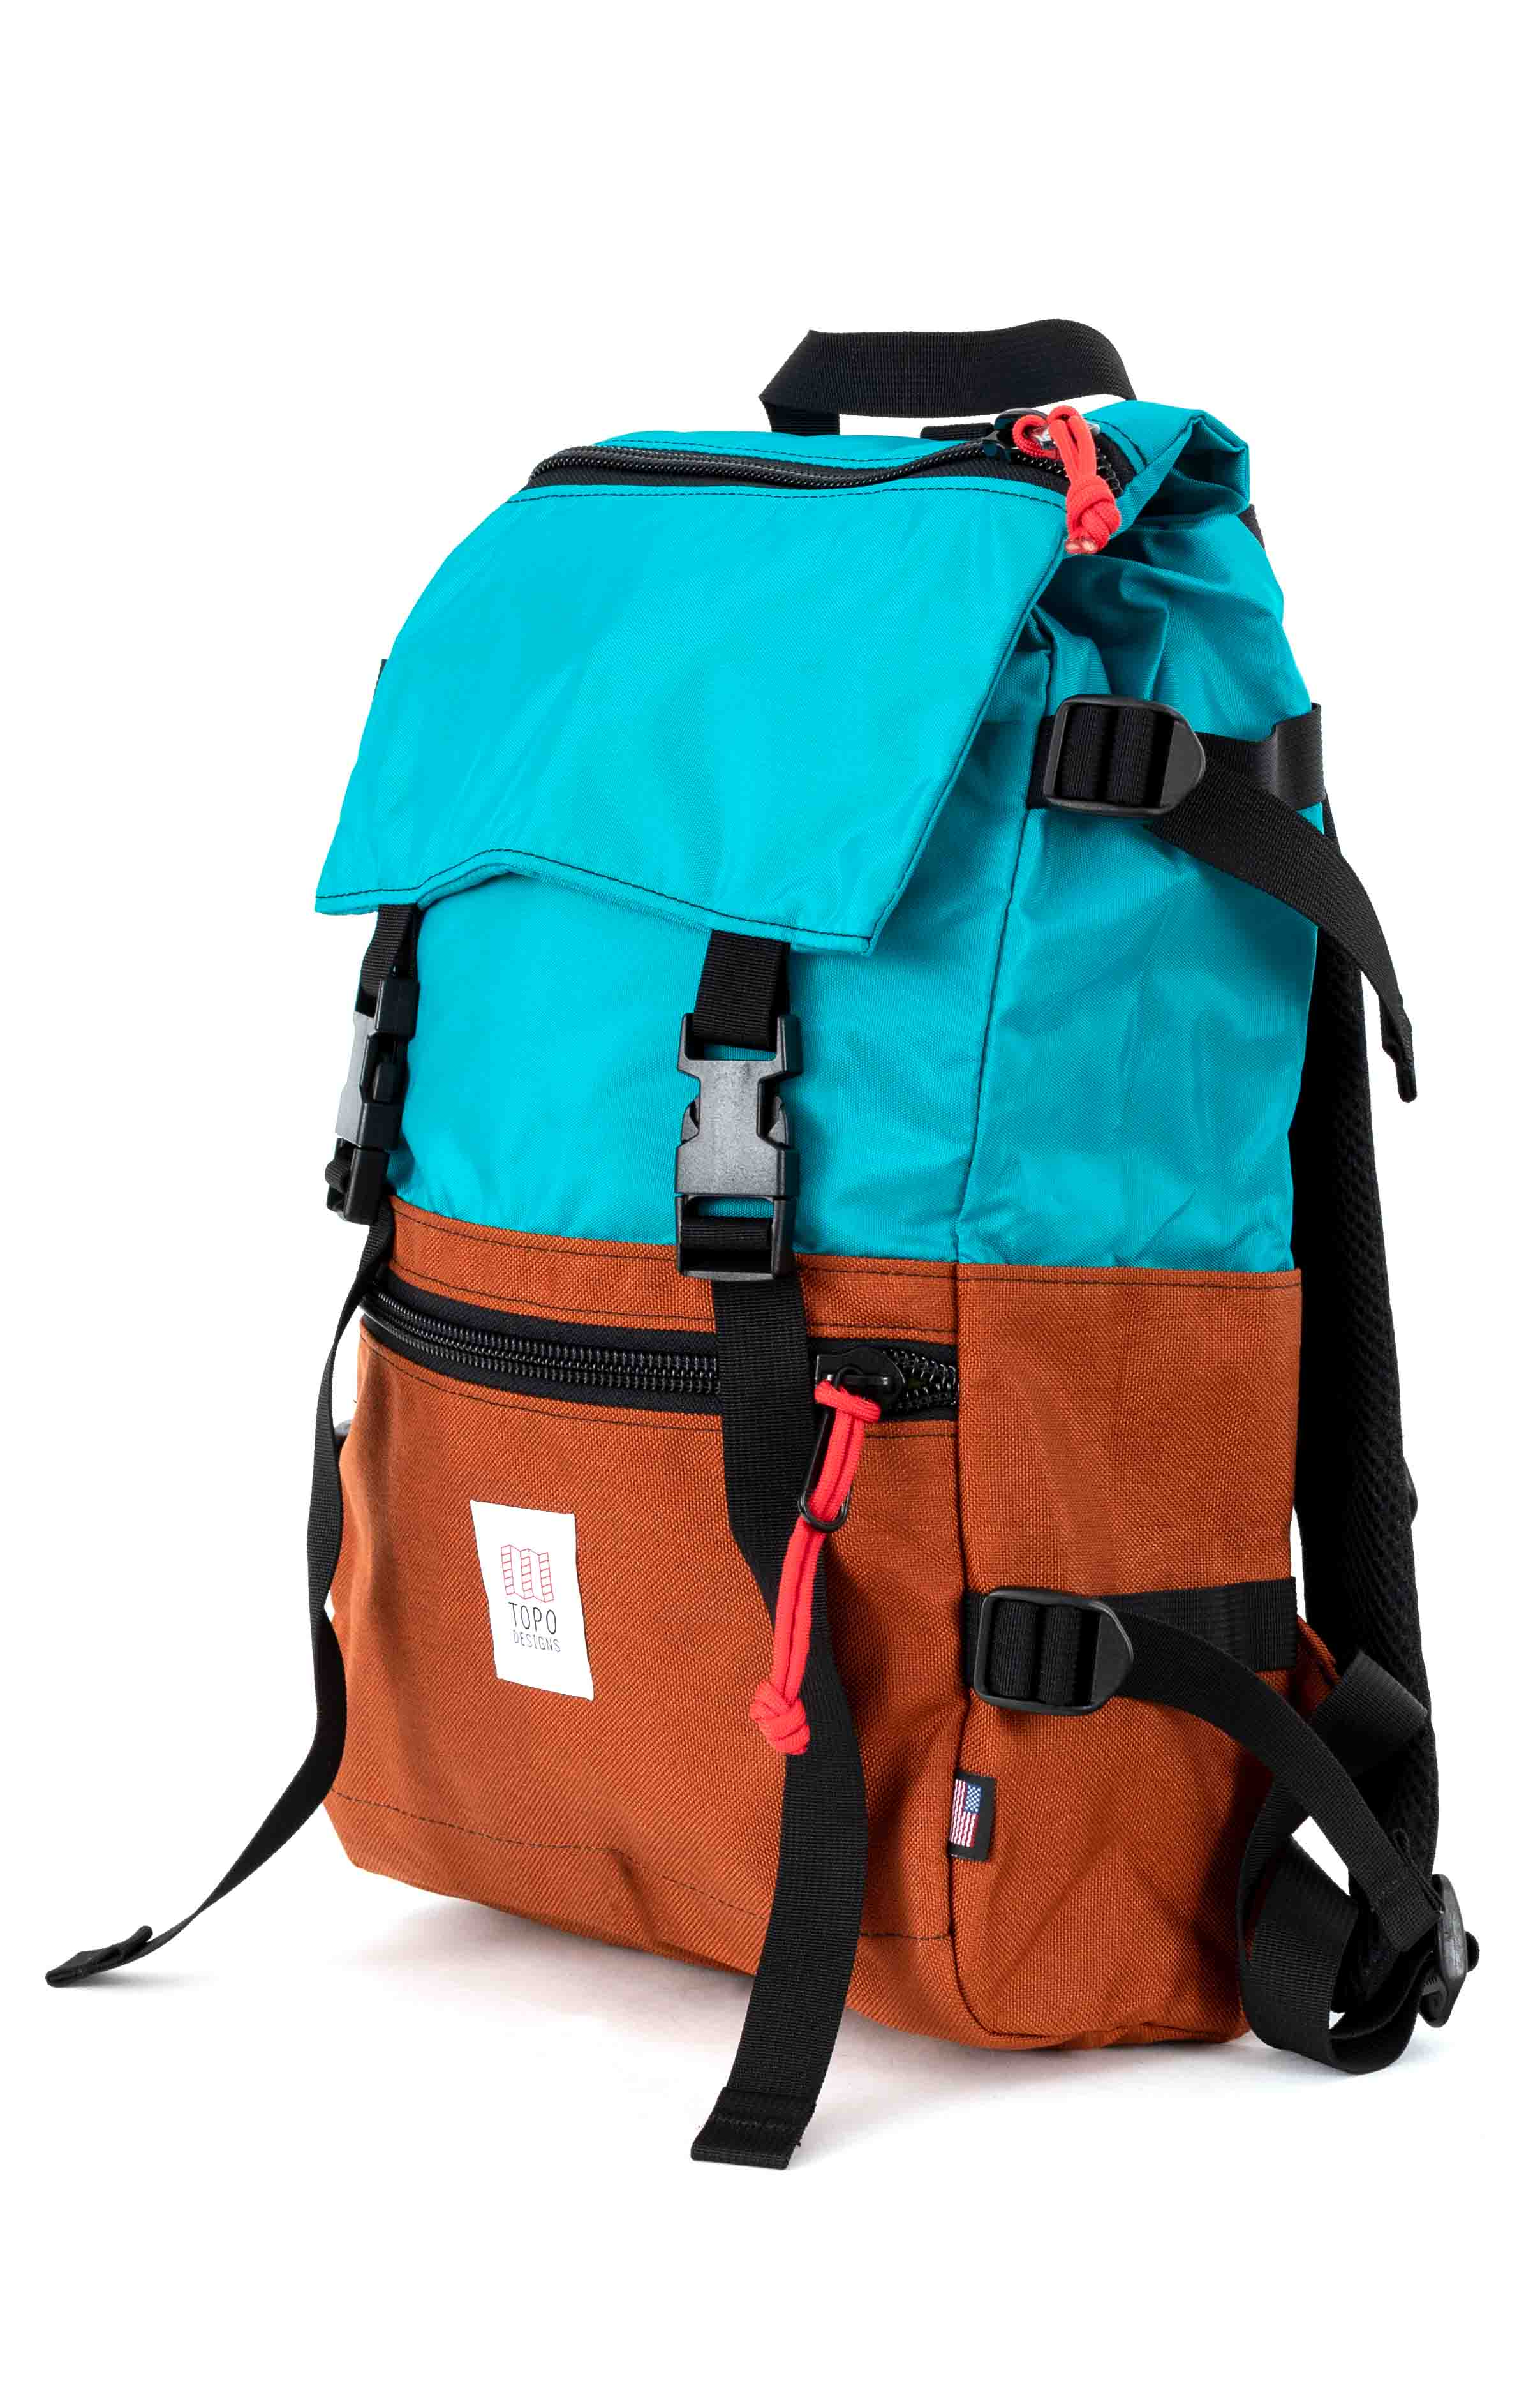 Rover Pack - Turquoise/Clay 2